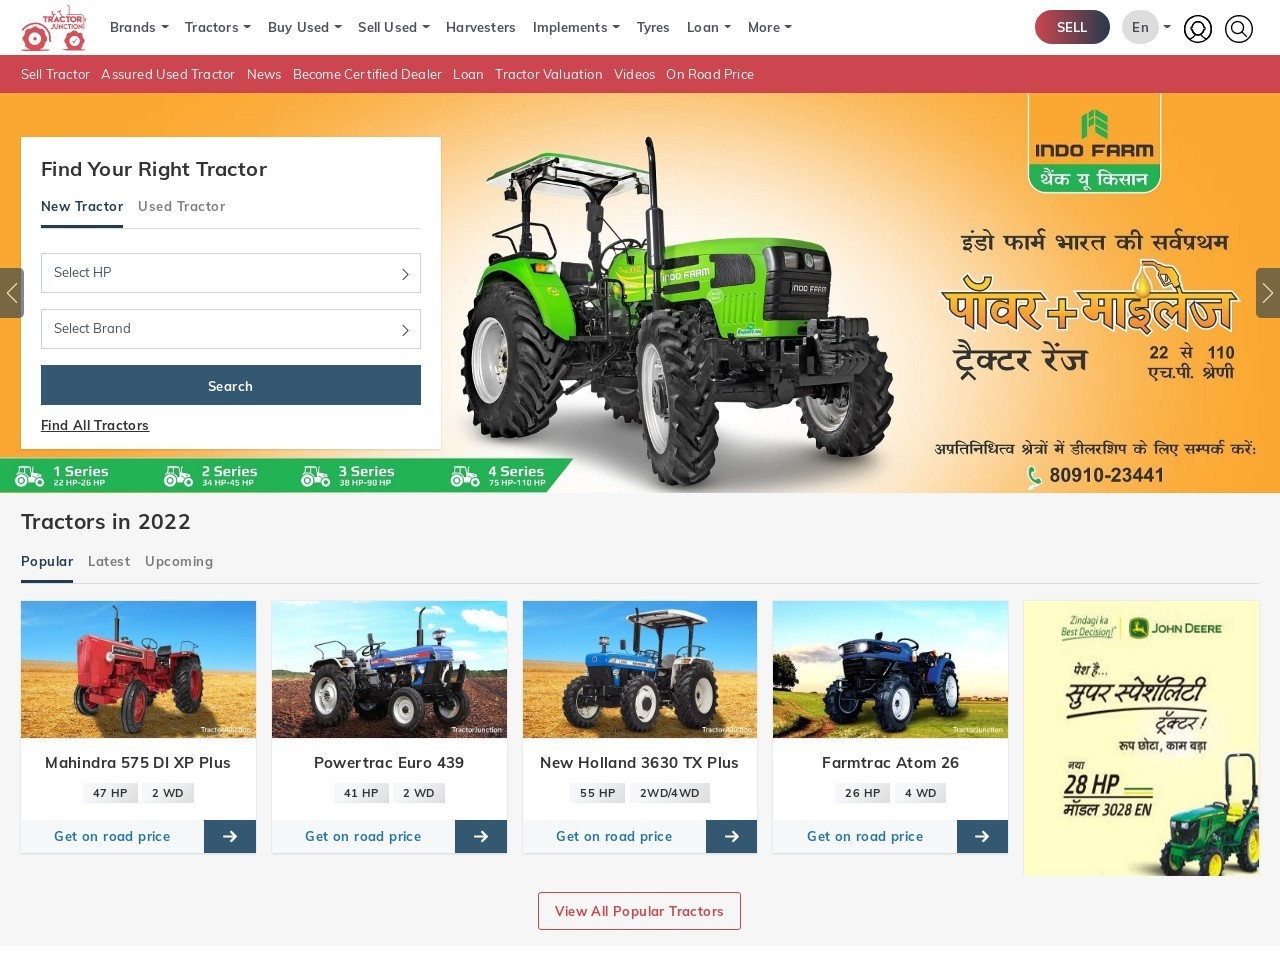 New Holland 3630 Tractor Price In India